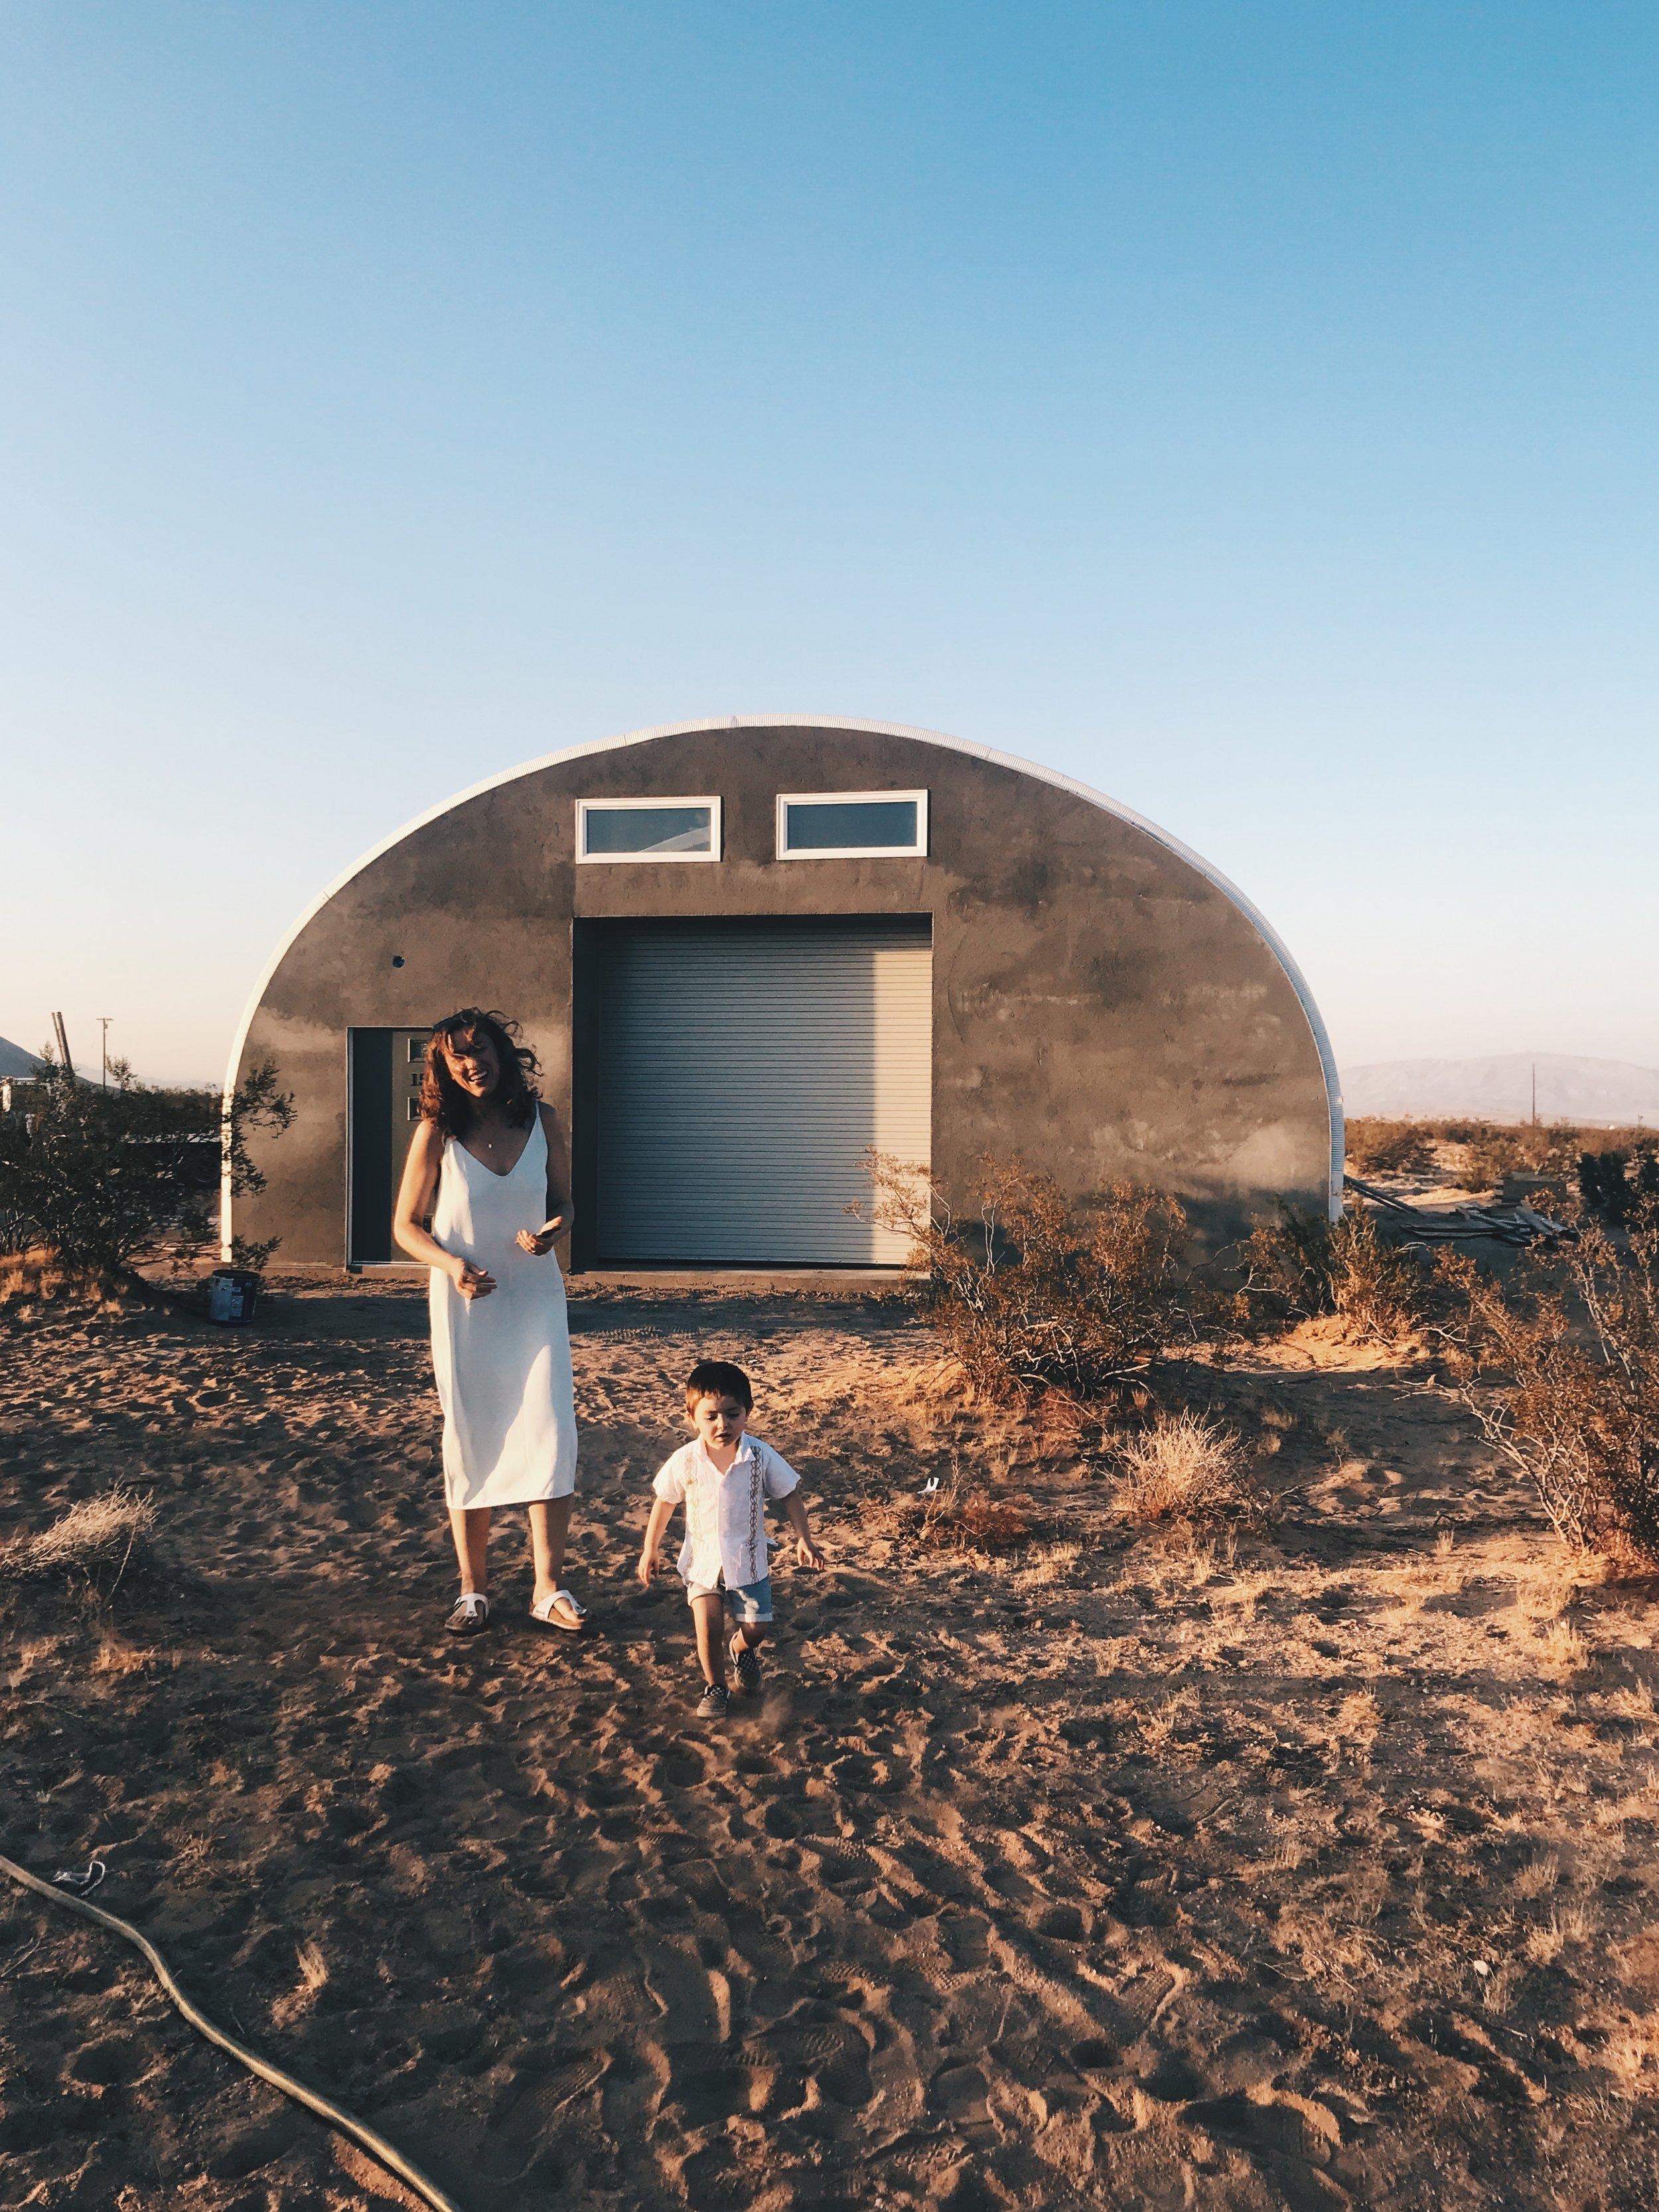 Emi & Momo exploring cousin Marie's new quanset hut she built in the middle of nowhere